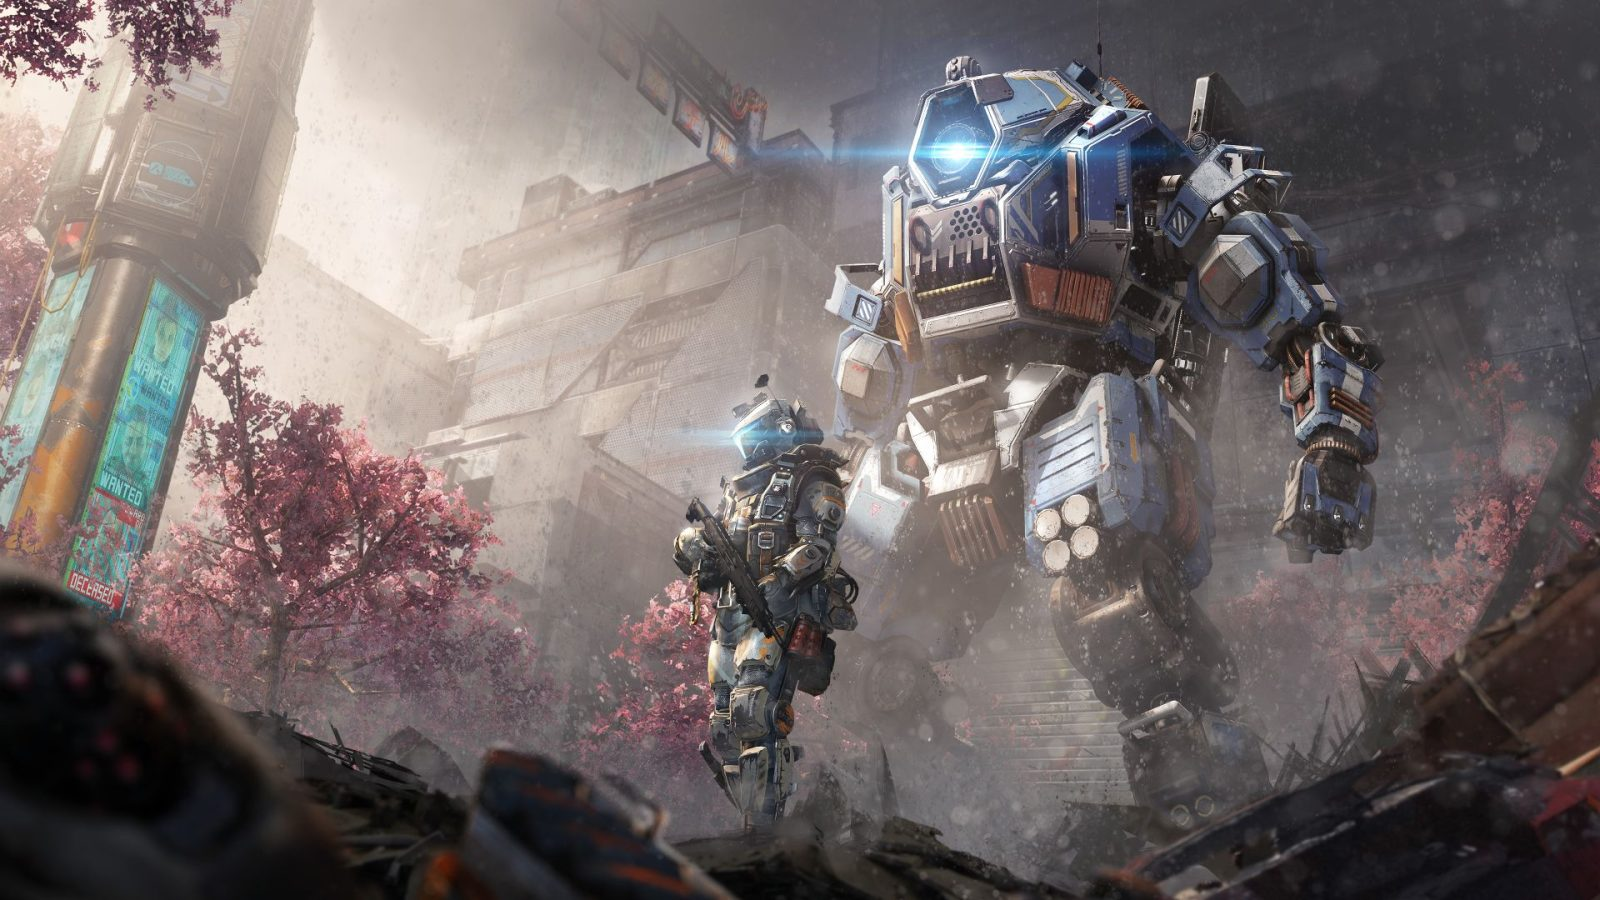 Today's Best Game Deals: Titanfall 2 Ultimate $4 50, Nioh $15